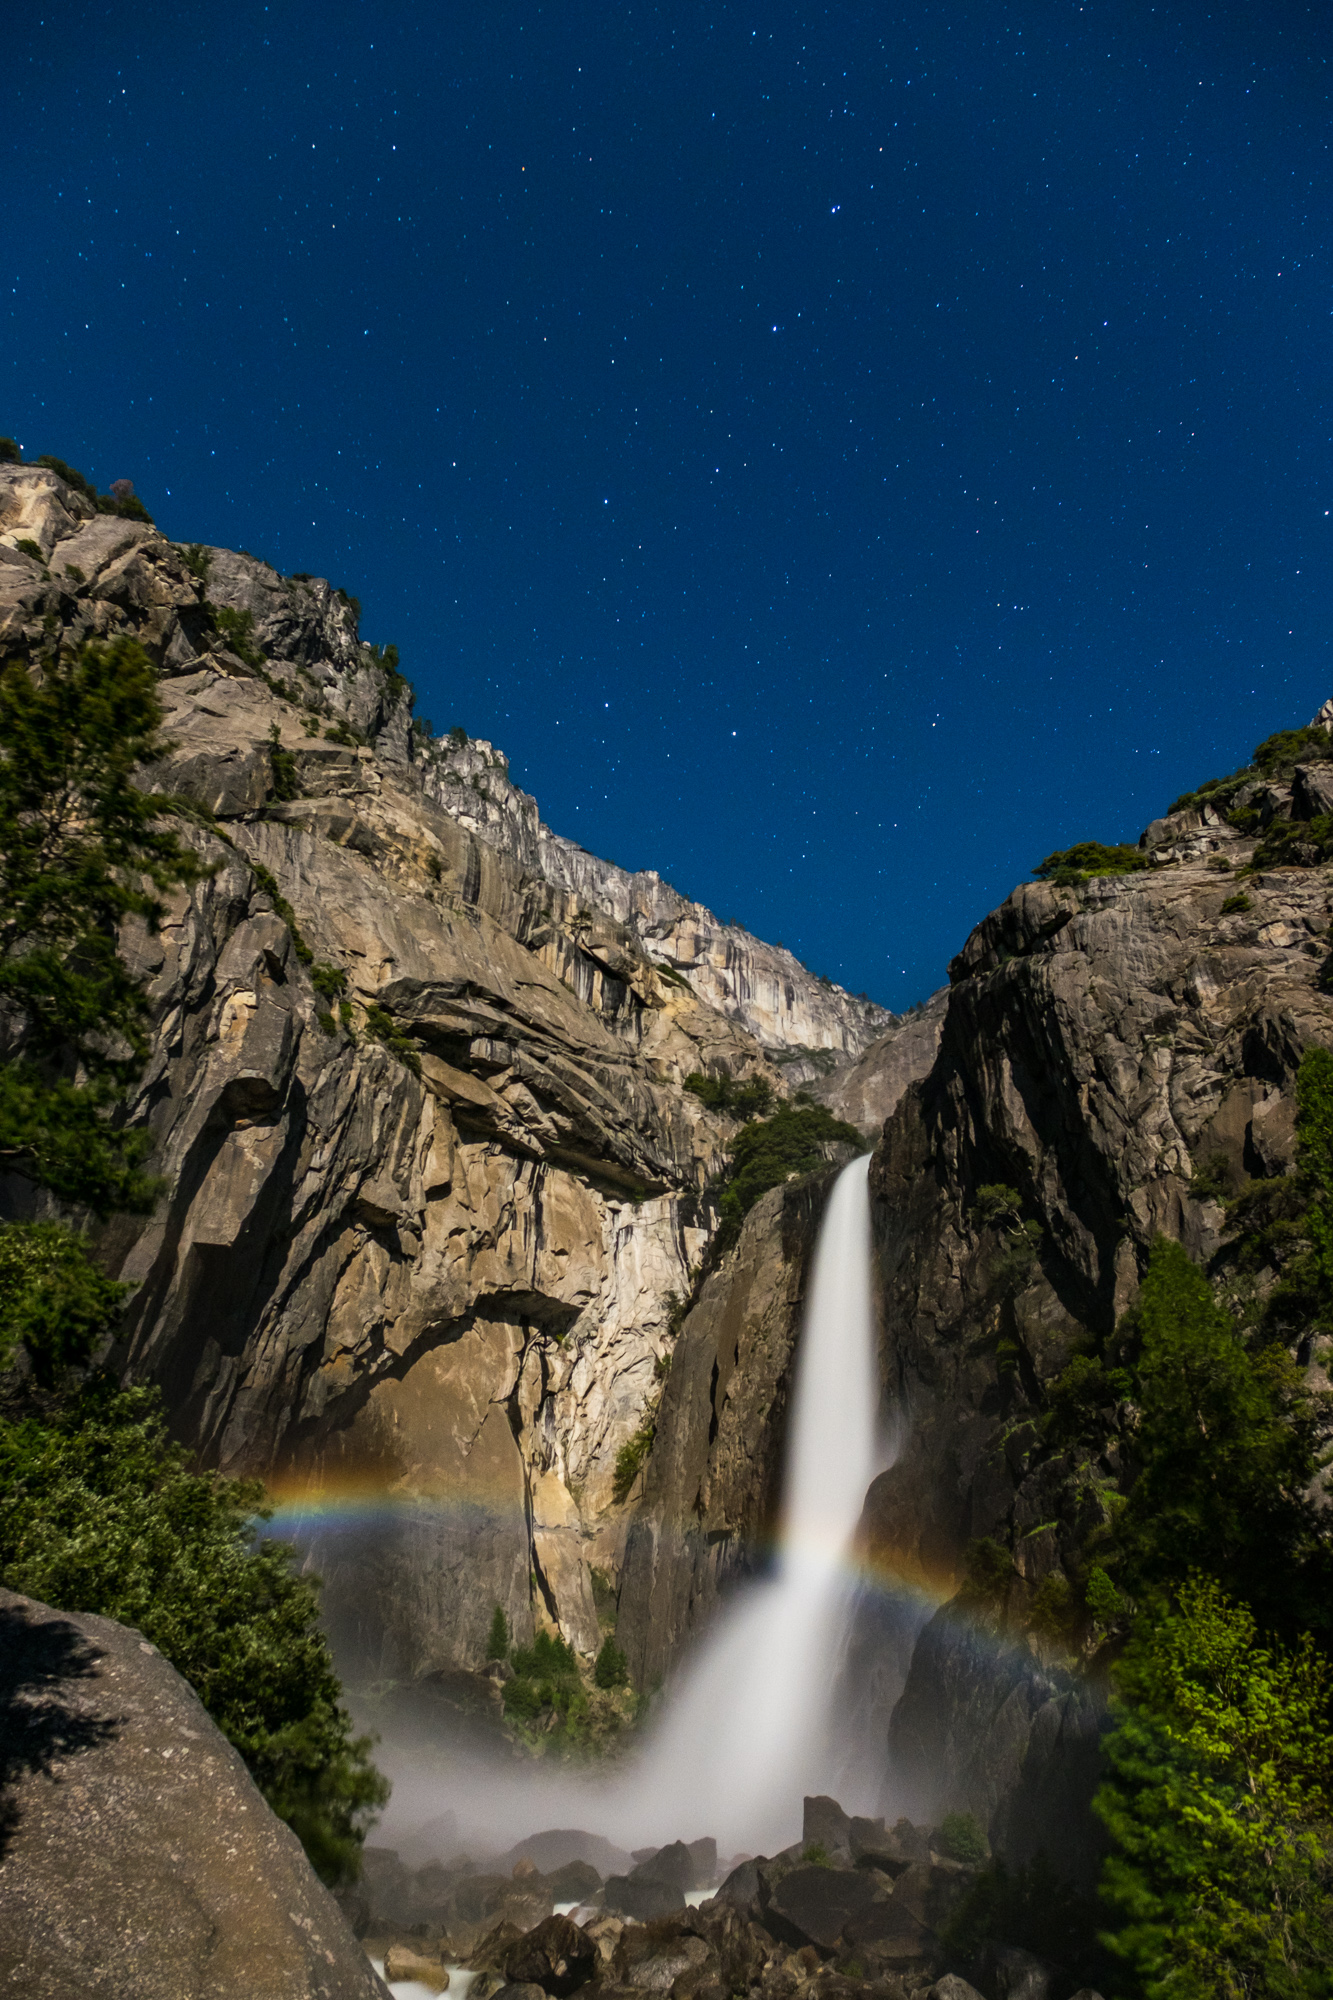 We were lucky enough to capture a rare event...the moonbow. This night rainbow happens twice a year, when the light of the full moon lines up perfectly with the waterfall.